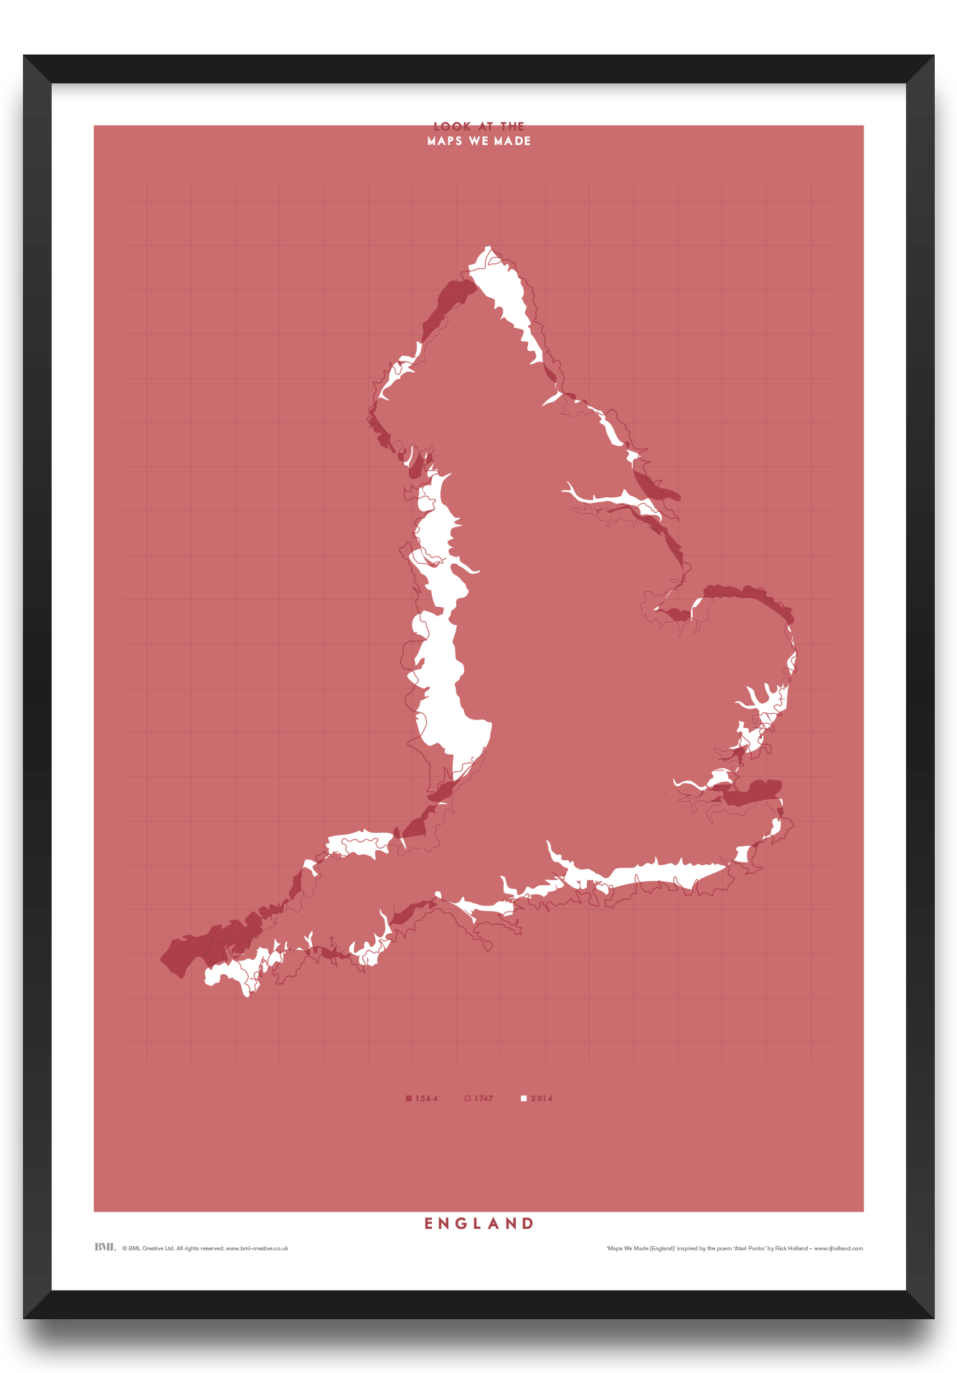 Maps We Made (England) framed print by James Lodge, Prints for Charity